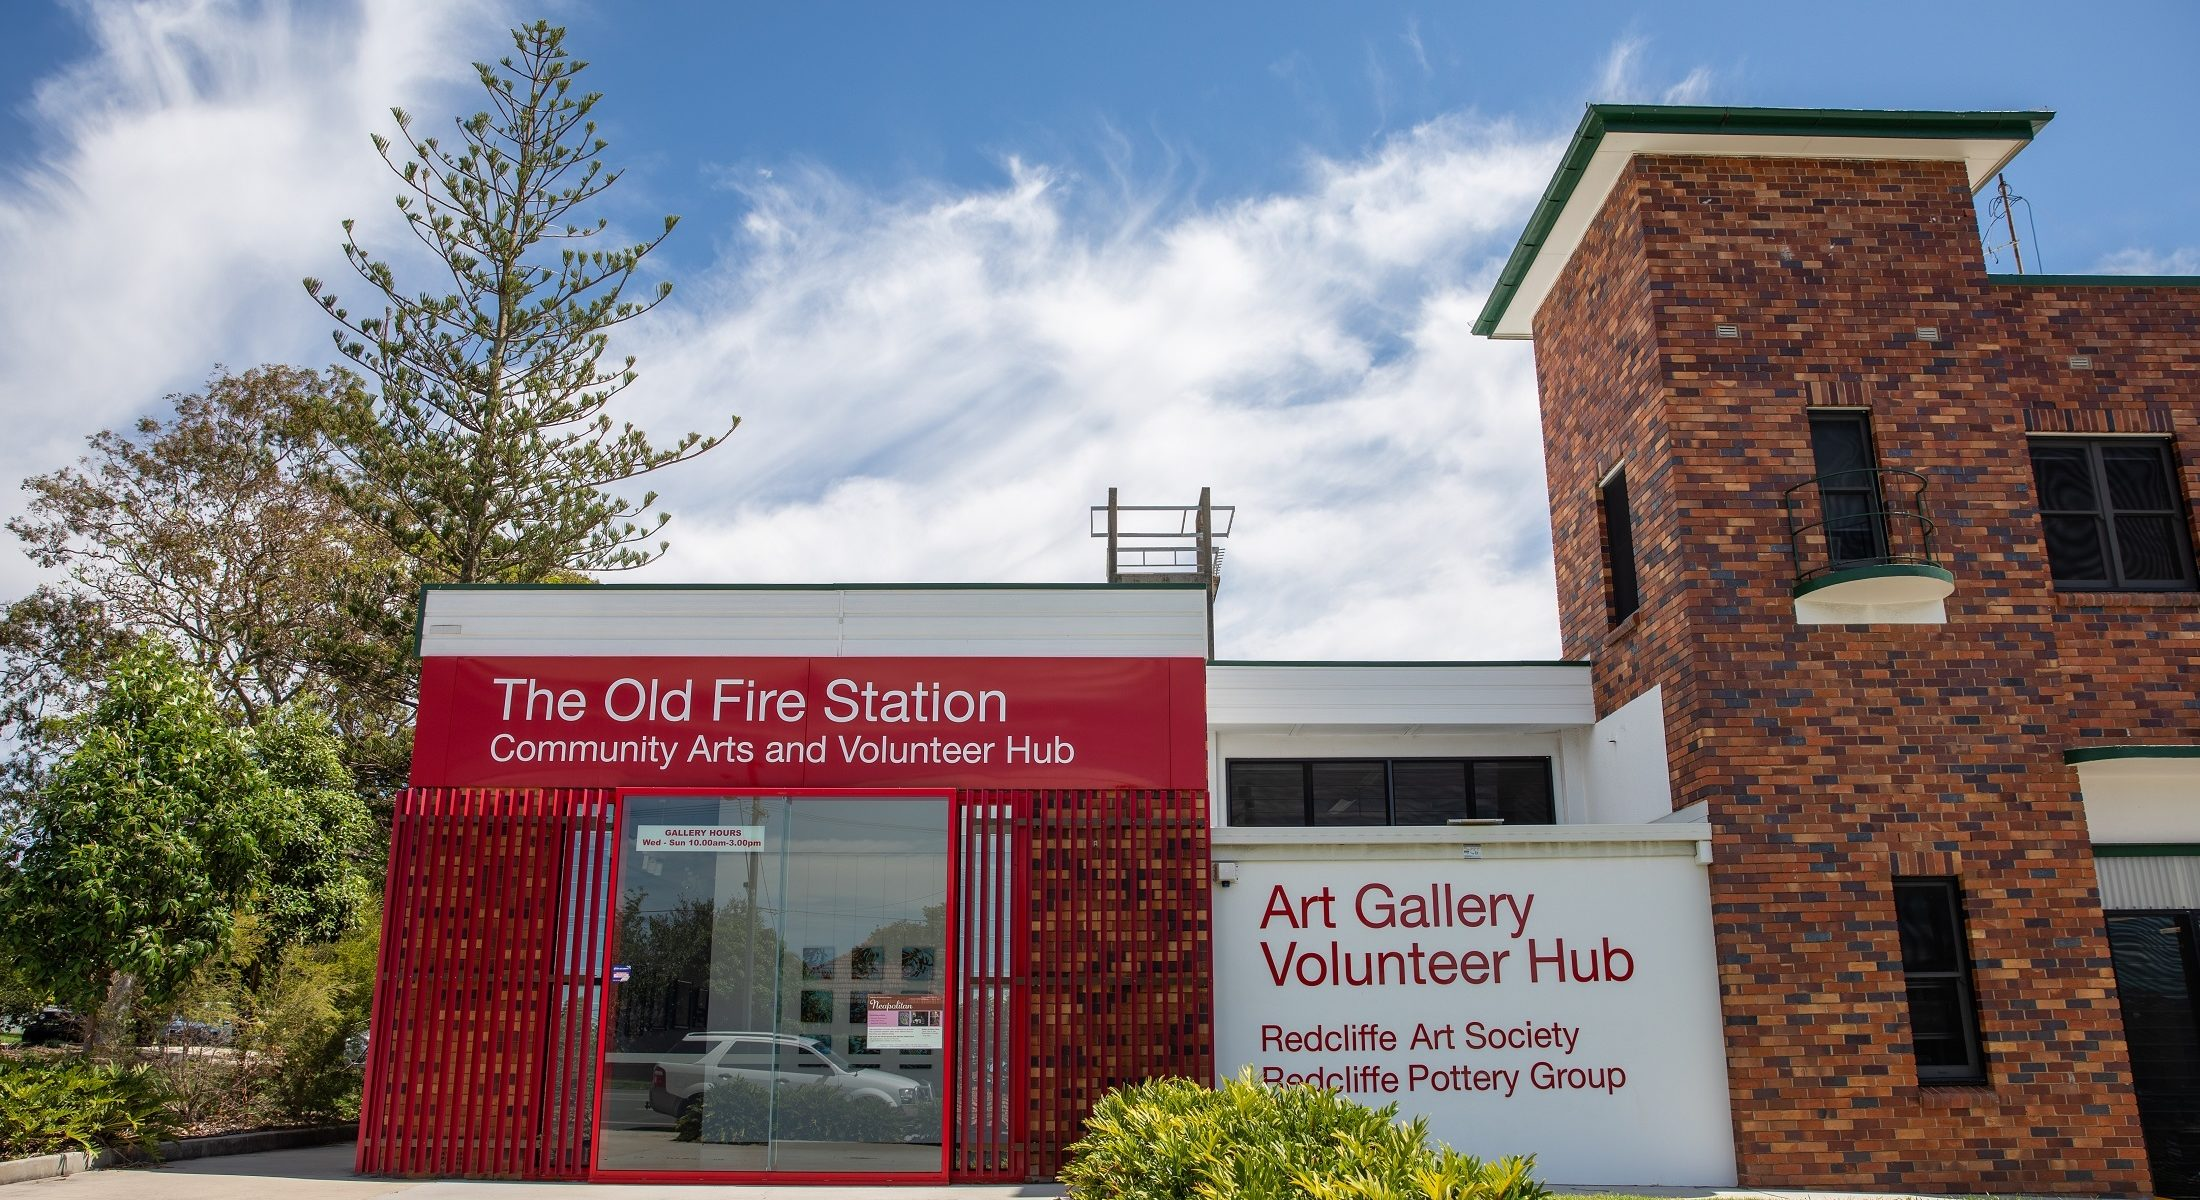 Old Fire Station Redcliffe Art Gallery Volunteer Hub Moreton Bay Region